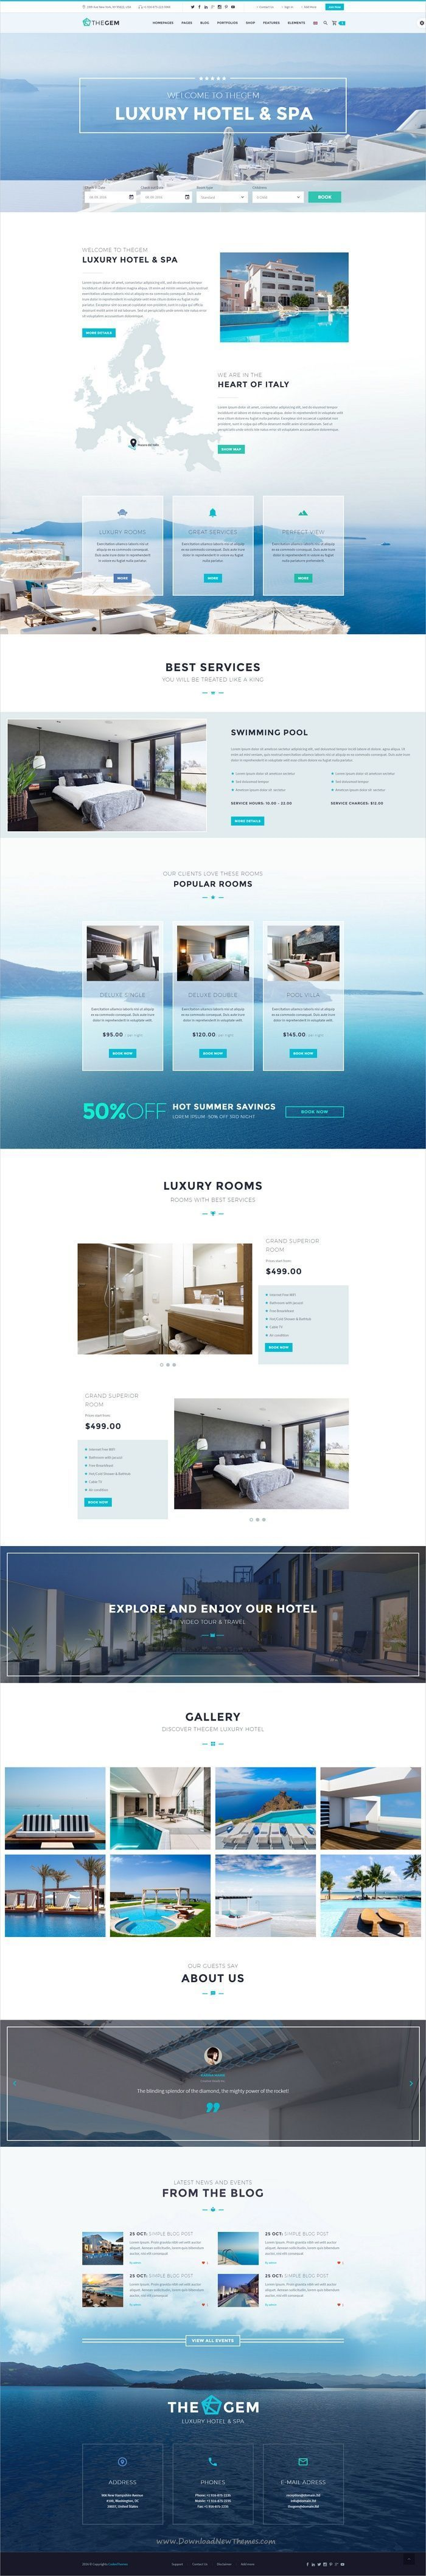 TheGem is creative multipurpose #PSD template for awesome #hotels #resorts websites and huge variety of design or web projects with 50+ homepage layouts & 200+ layered PSD files download now➩ https://themeforest.net/item/thegem-creative-multipurpose-psd-template/19746346?ref=Datasata #ResponsiveWebDesign